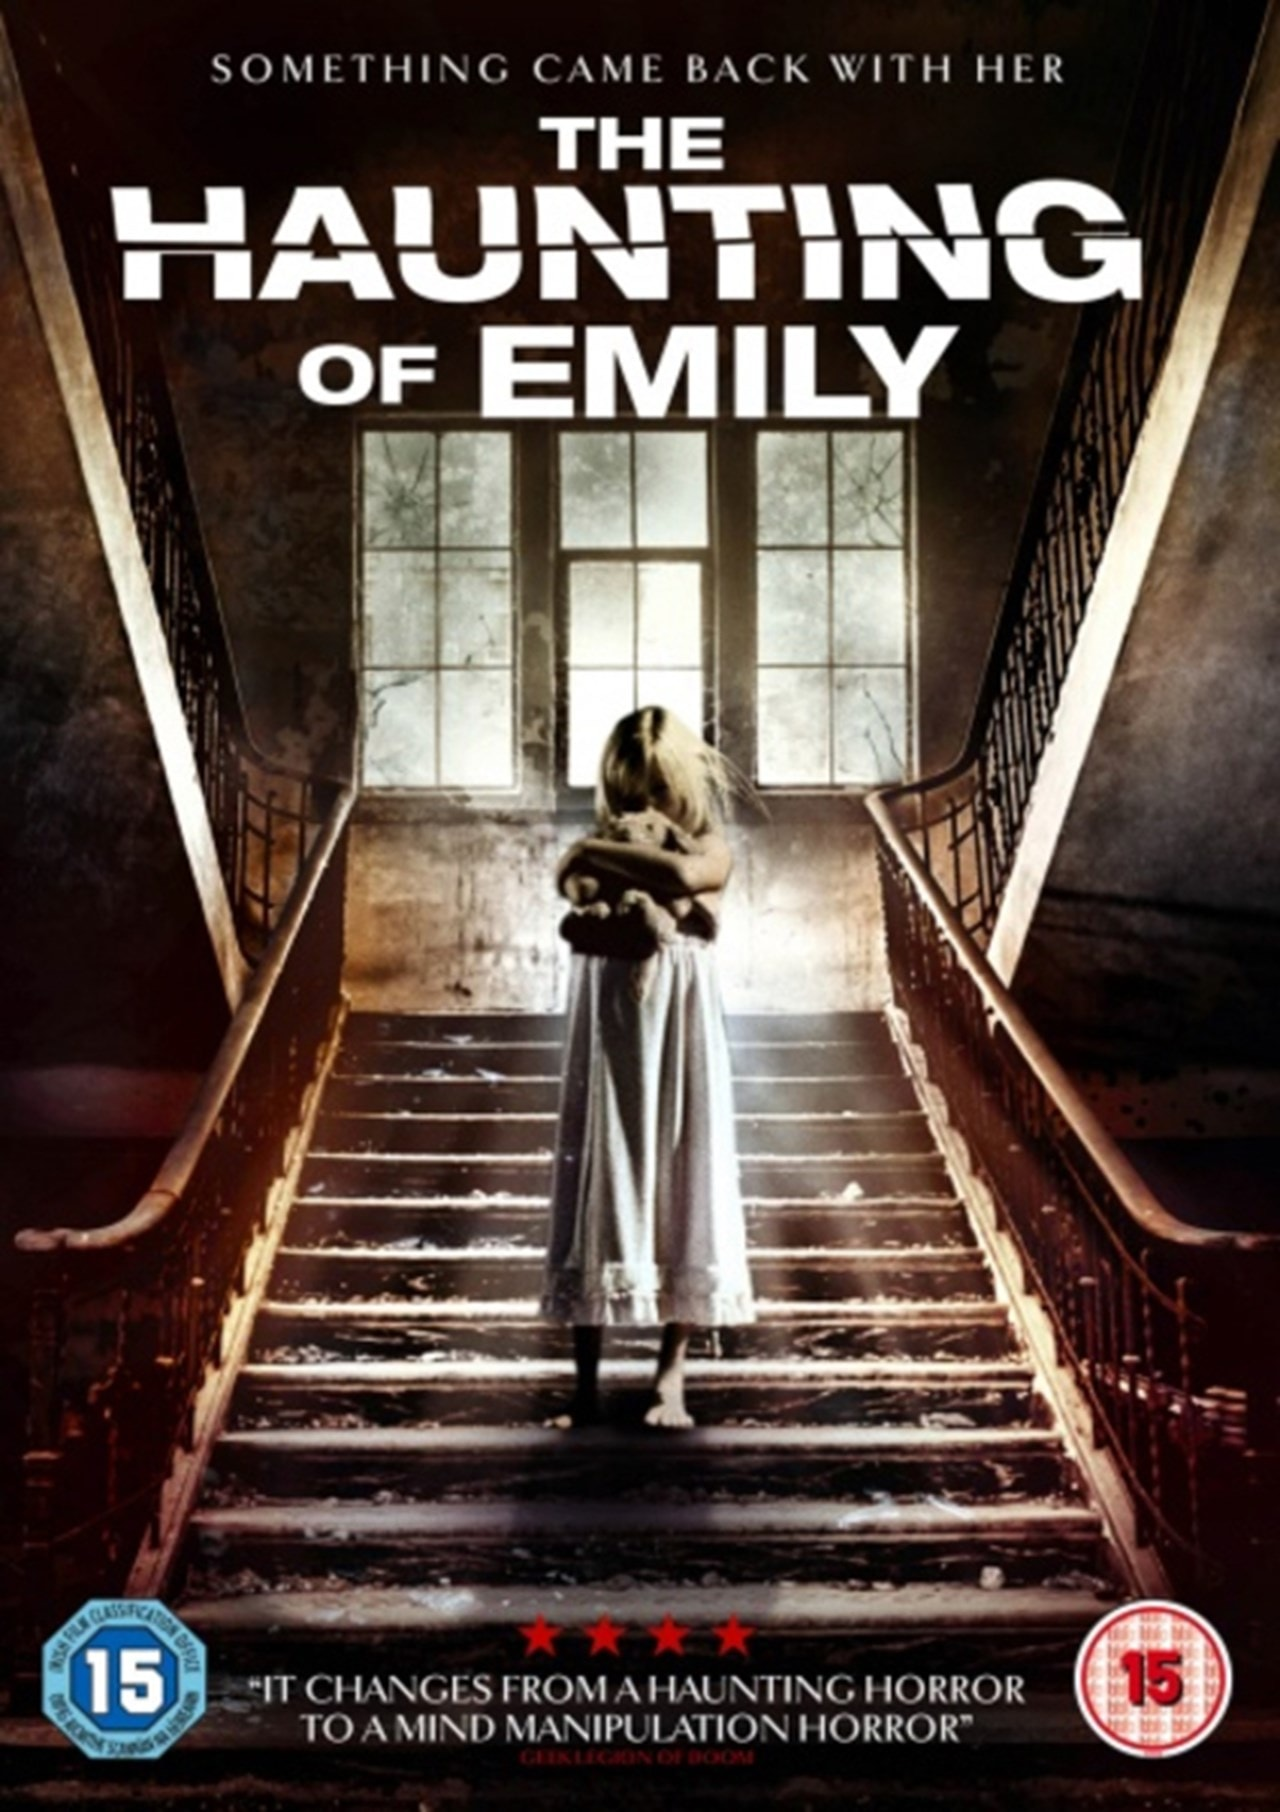 The Haunting of Emily - 1